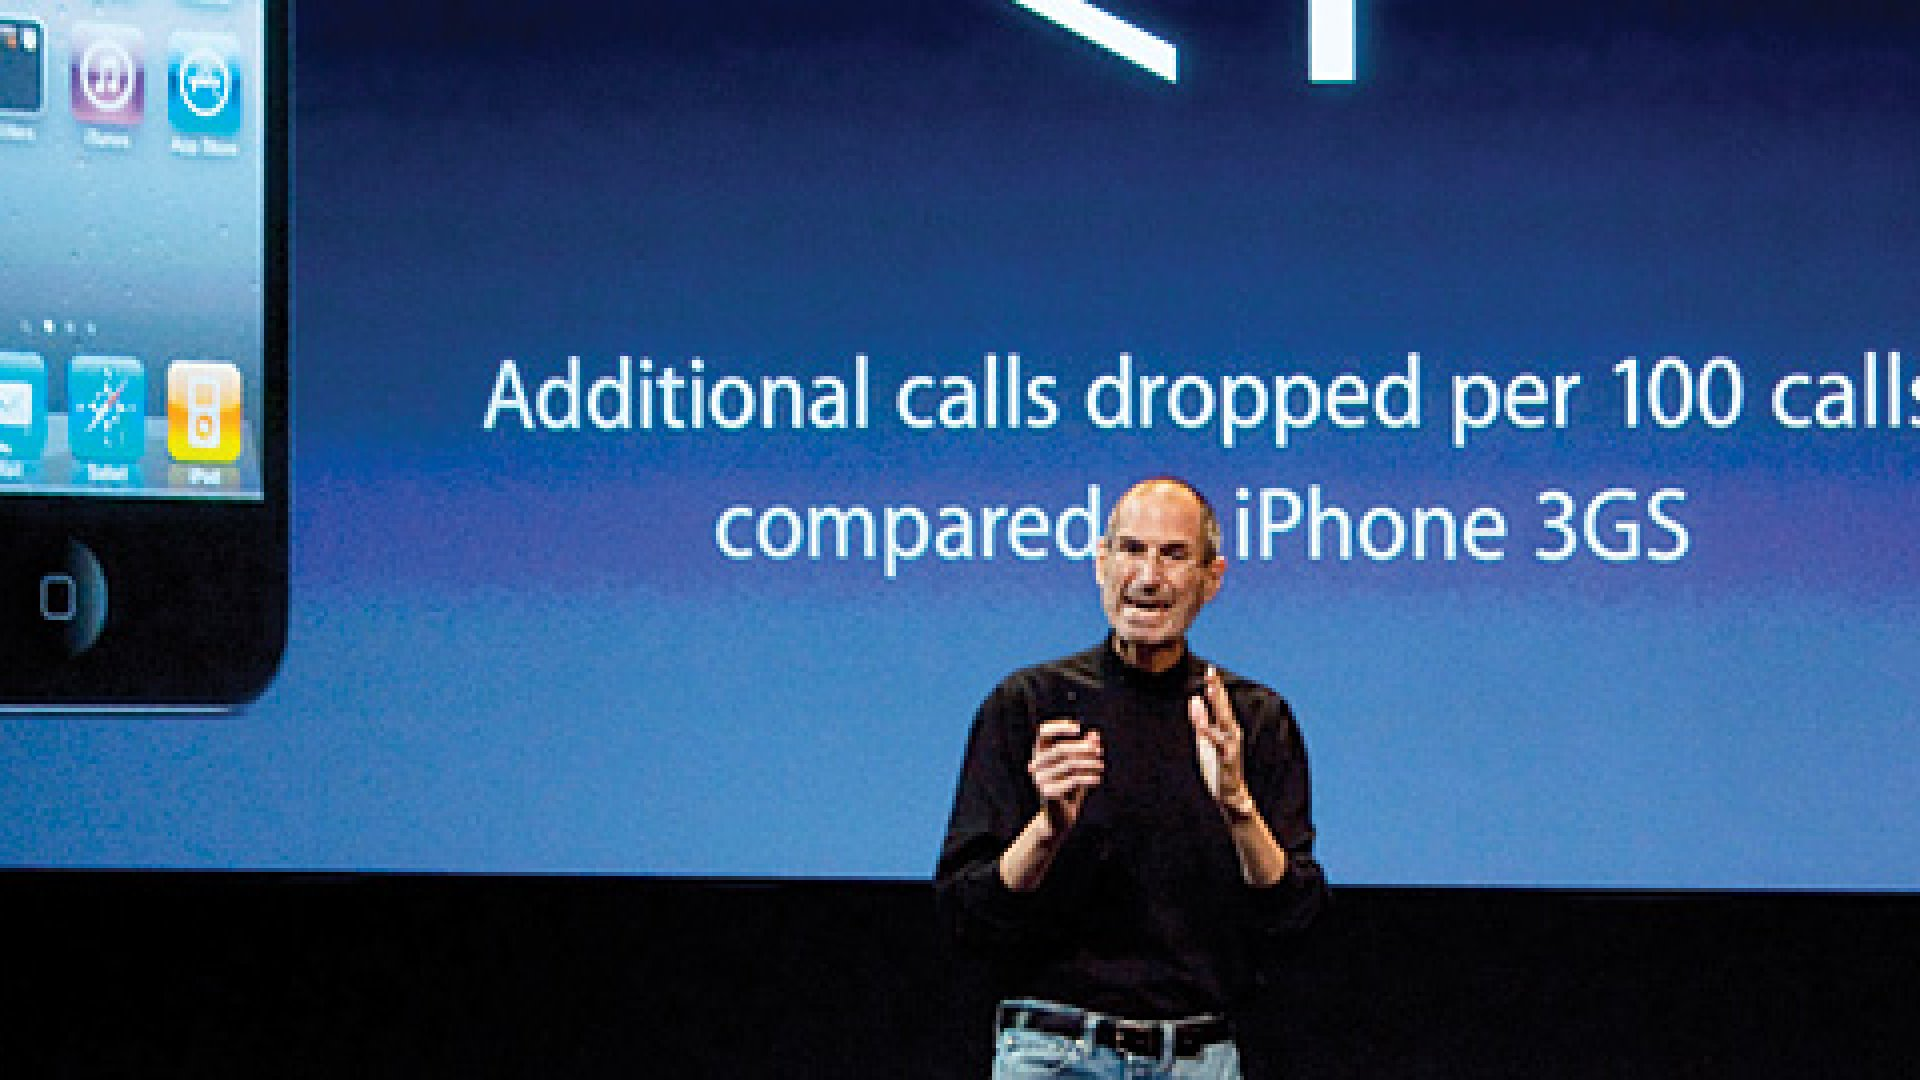 Steve Jobs speaking at a press conference for Apple's iPhone 4